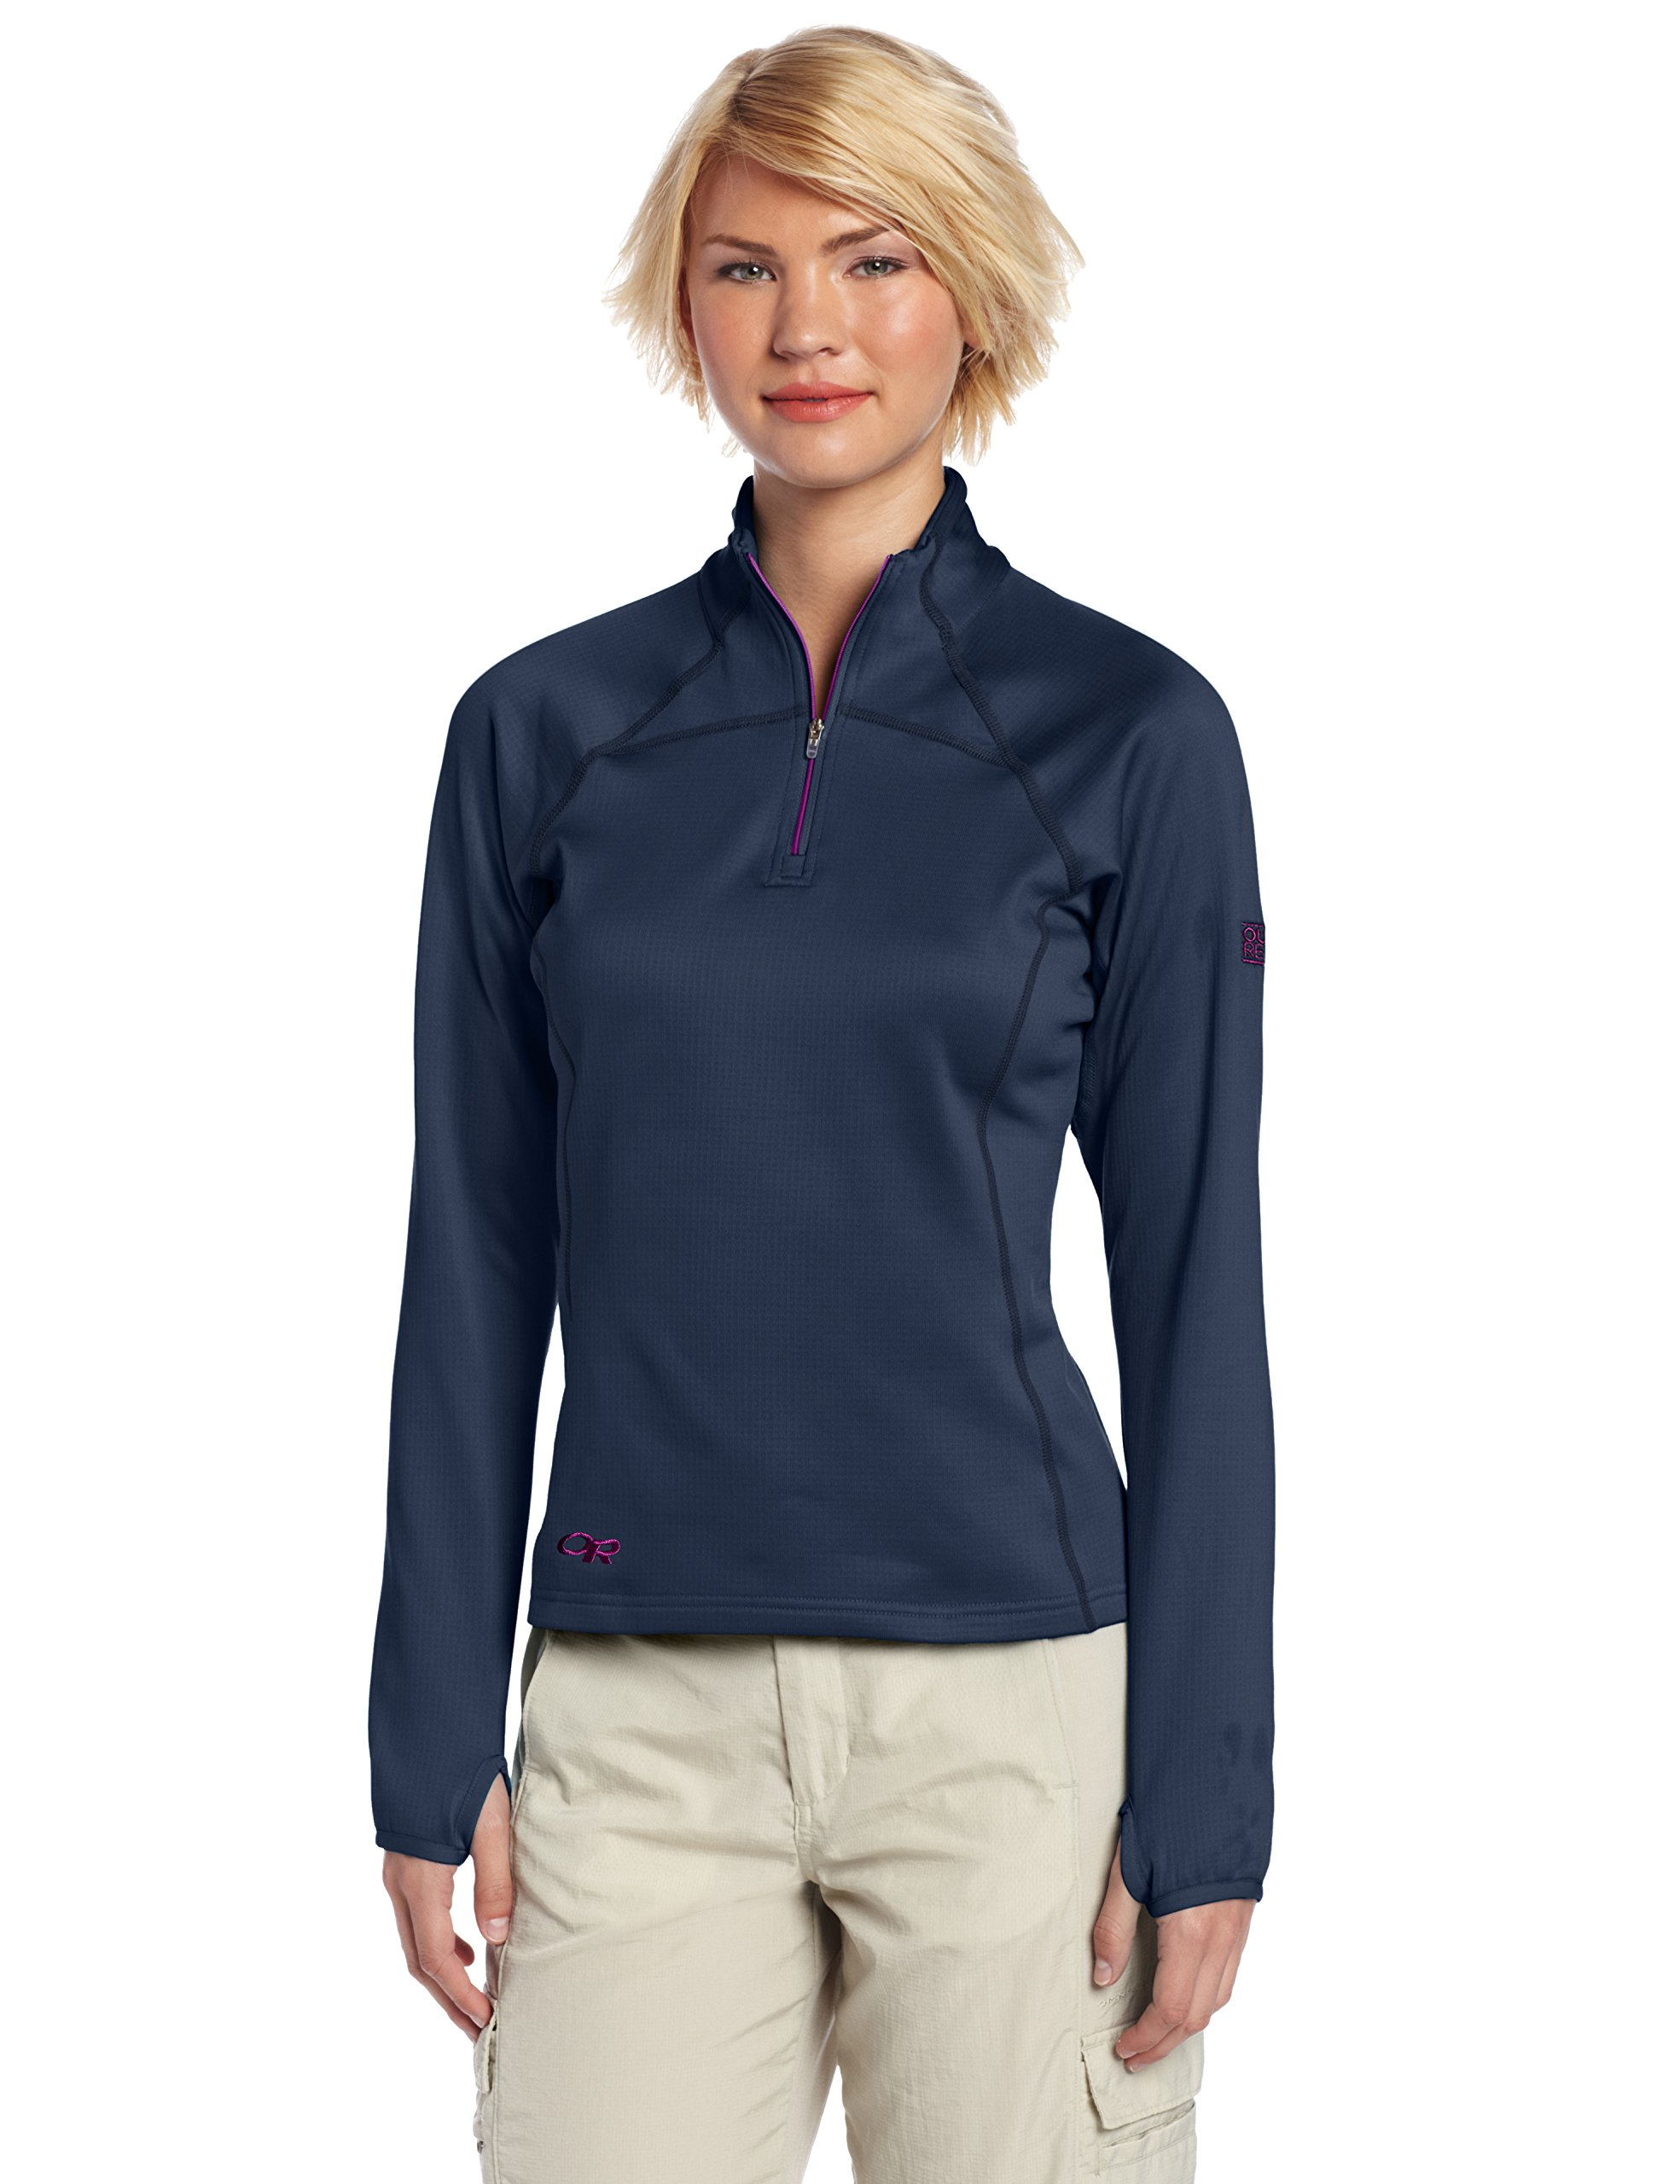 Outdoor Research Women's Radiant Light Zip Top, Night/Ultraviolet, Medium by Outdoor Research